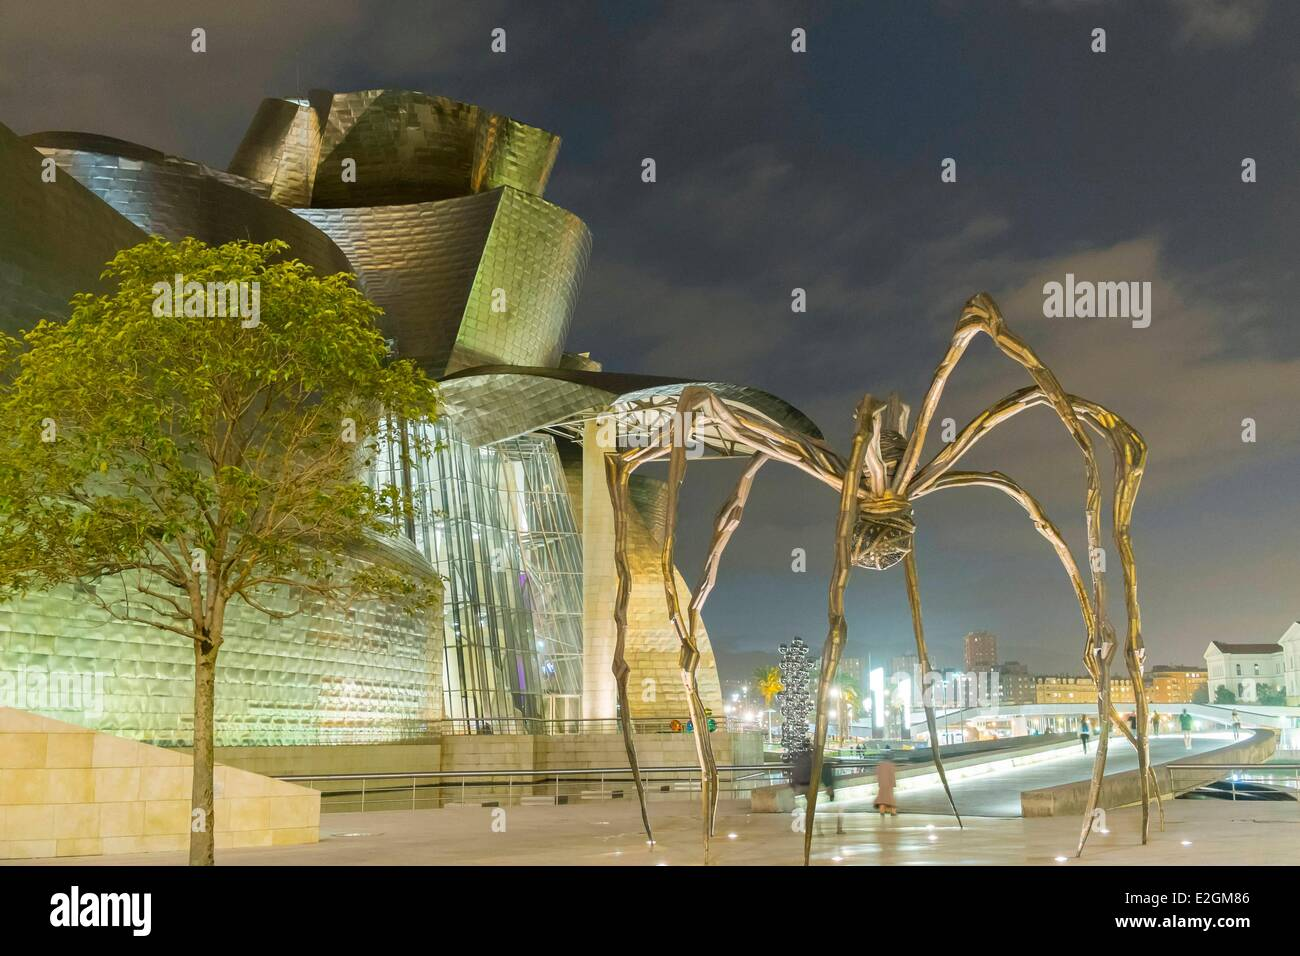 Spain Basque Country Region Vizcaya Province Bilbao Guggenheim Museum by architect Frank Gehry and spider shaped - Stock Image